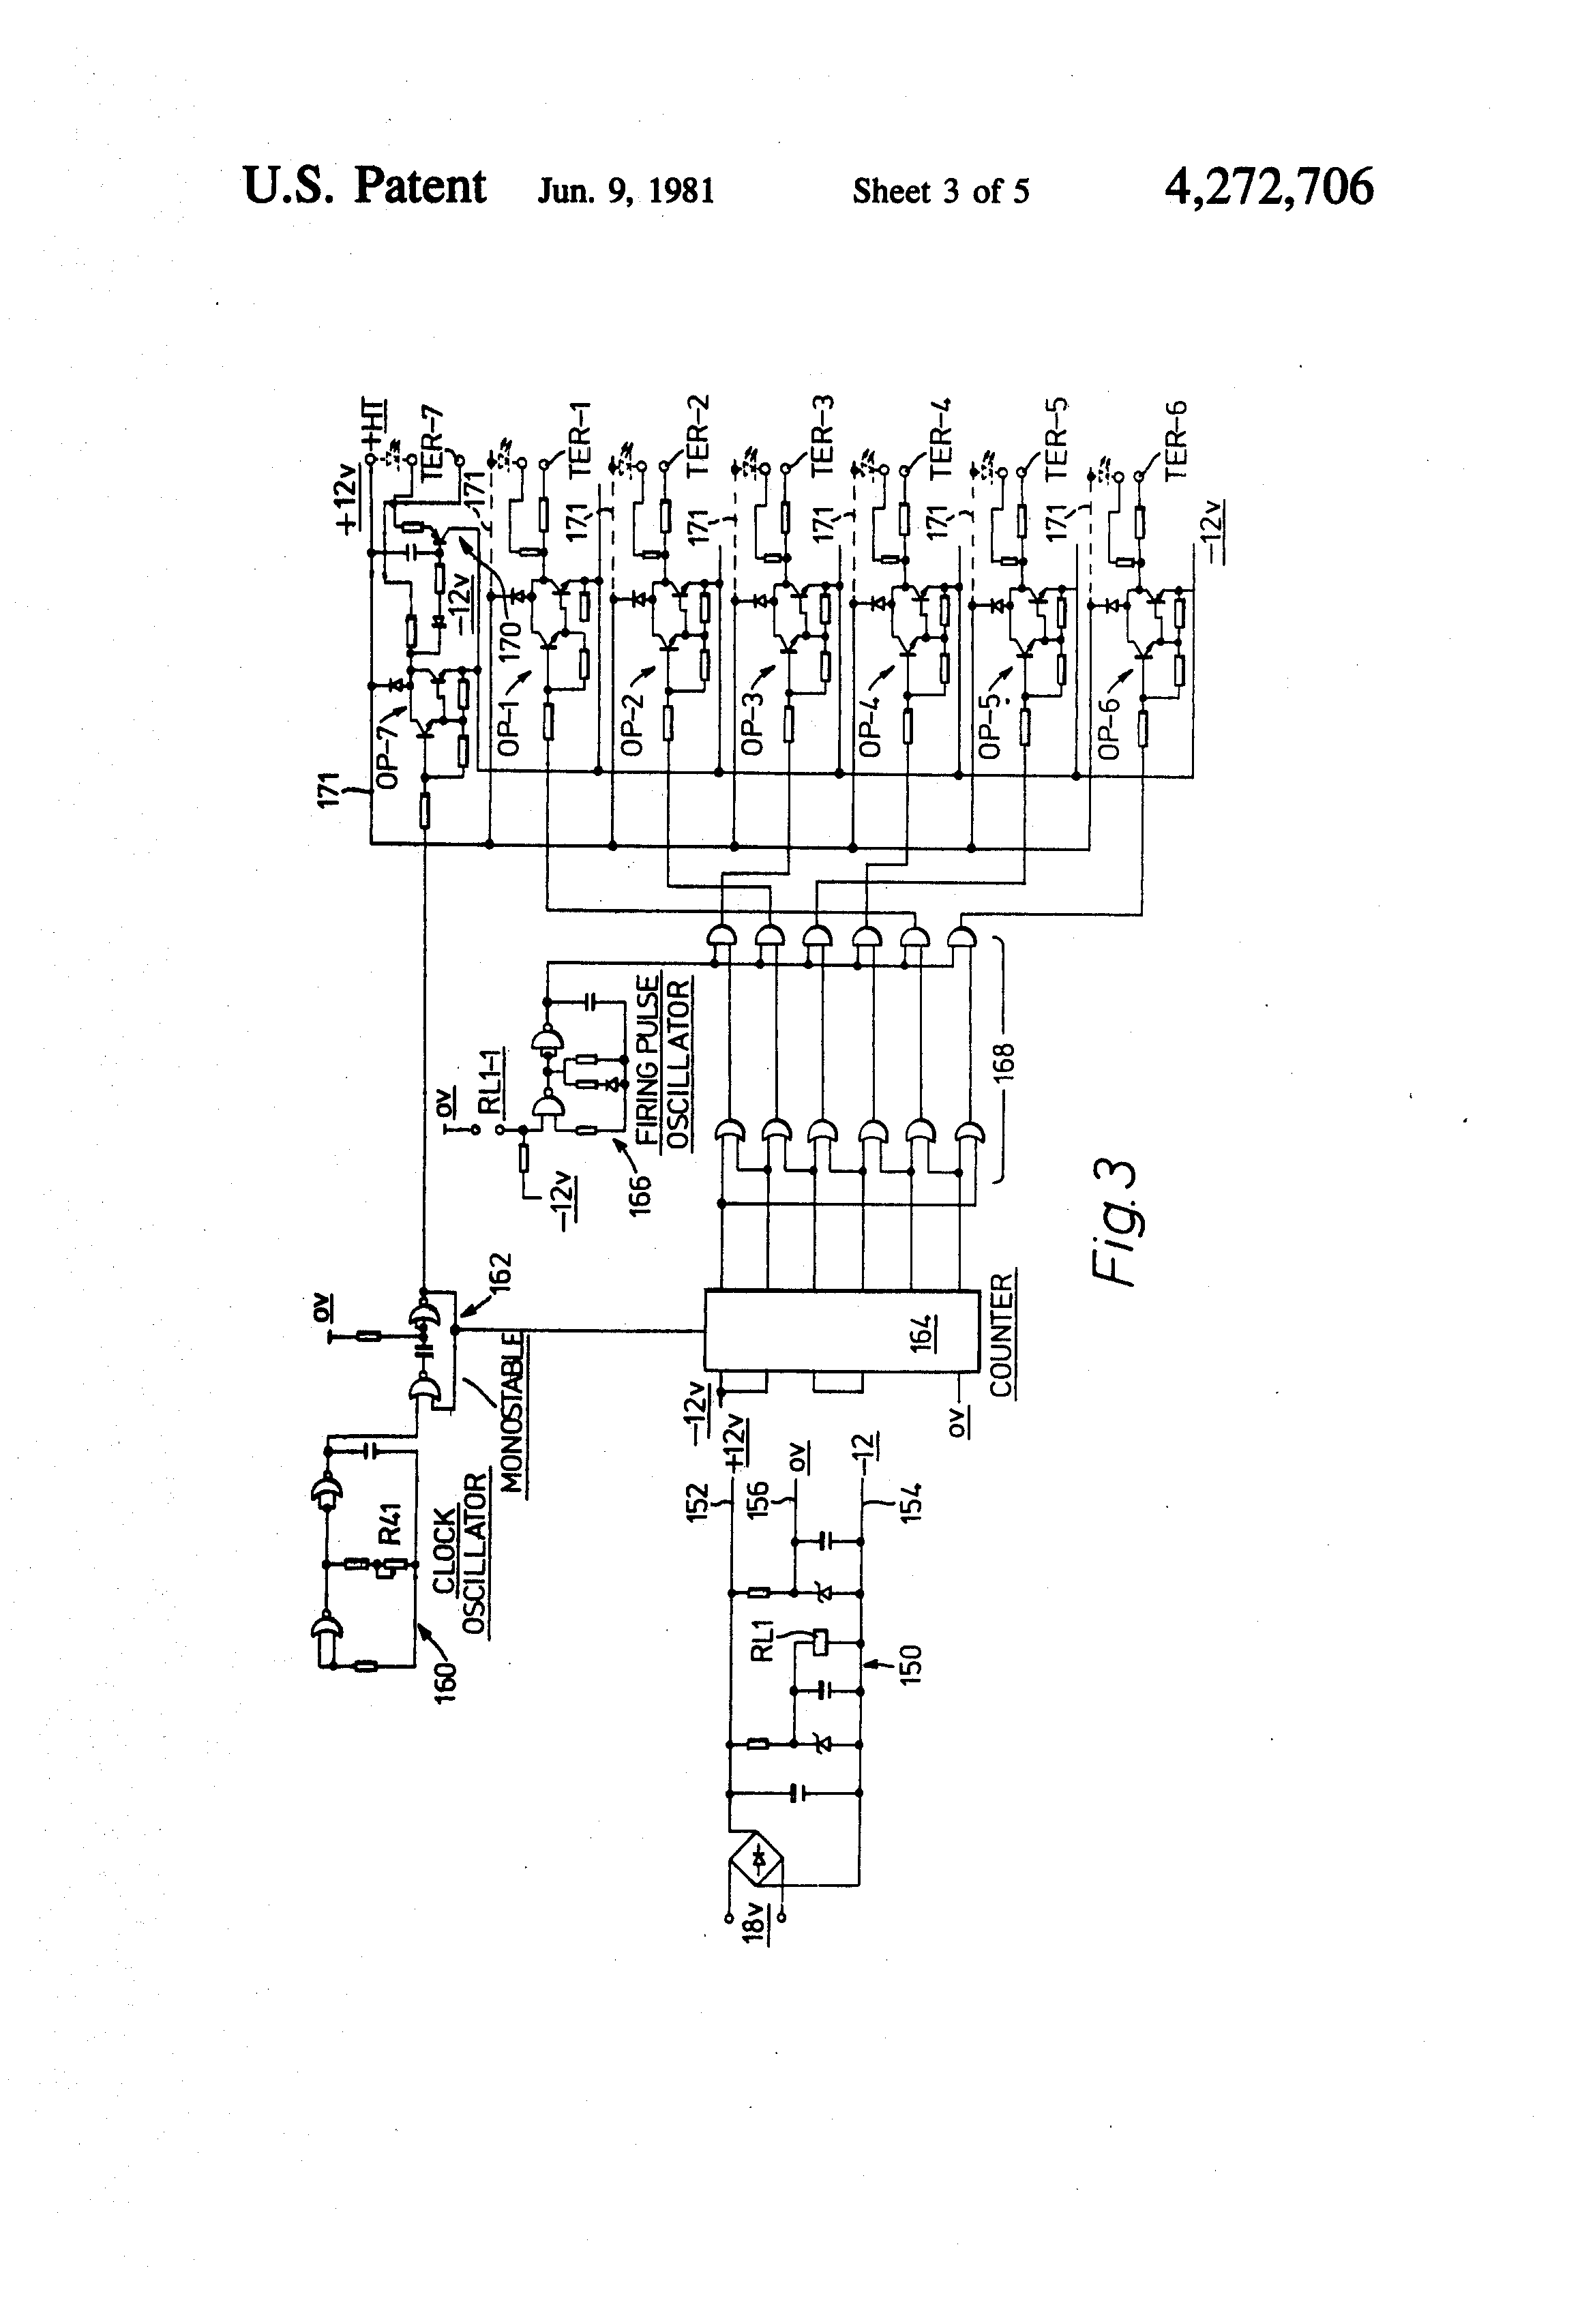 tags: #wye delta motor starting#y start delta run motor#12 lead wye delta  connection diagram#wye delta starter wiring diagram#12 lead motor star delta